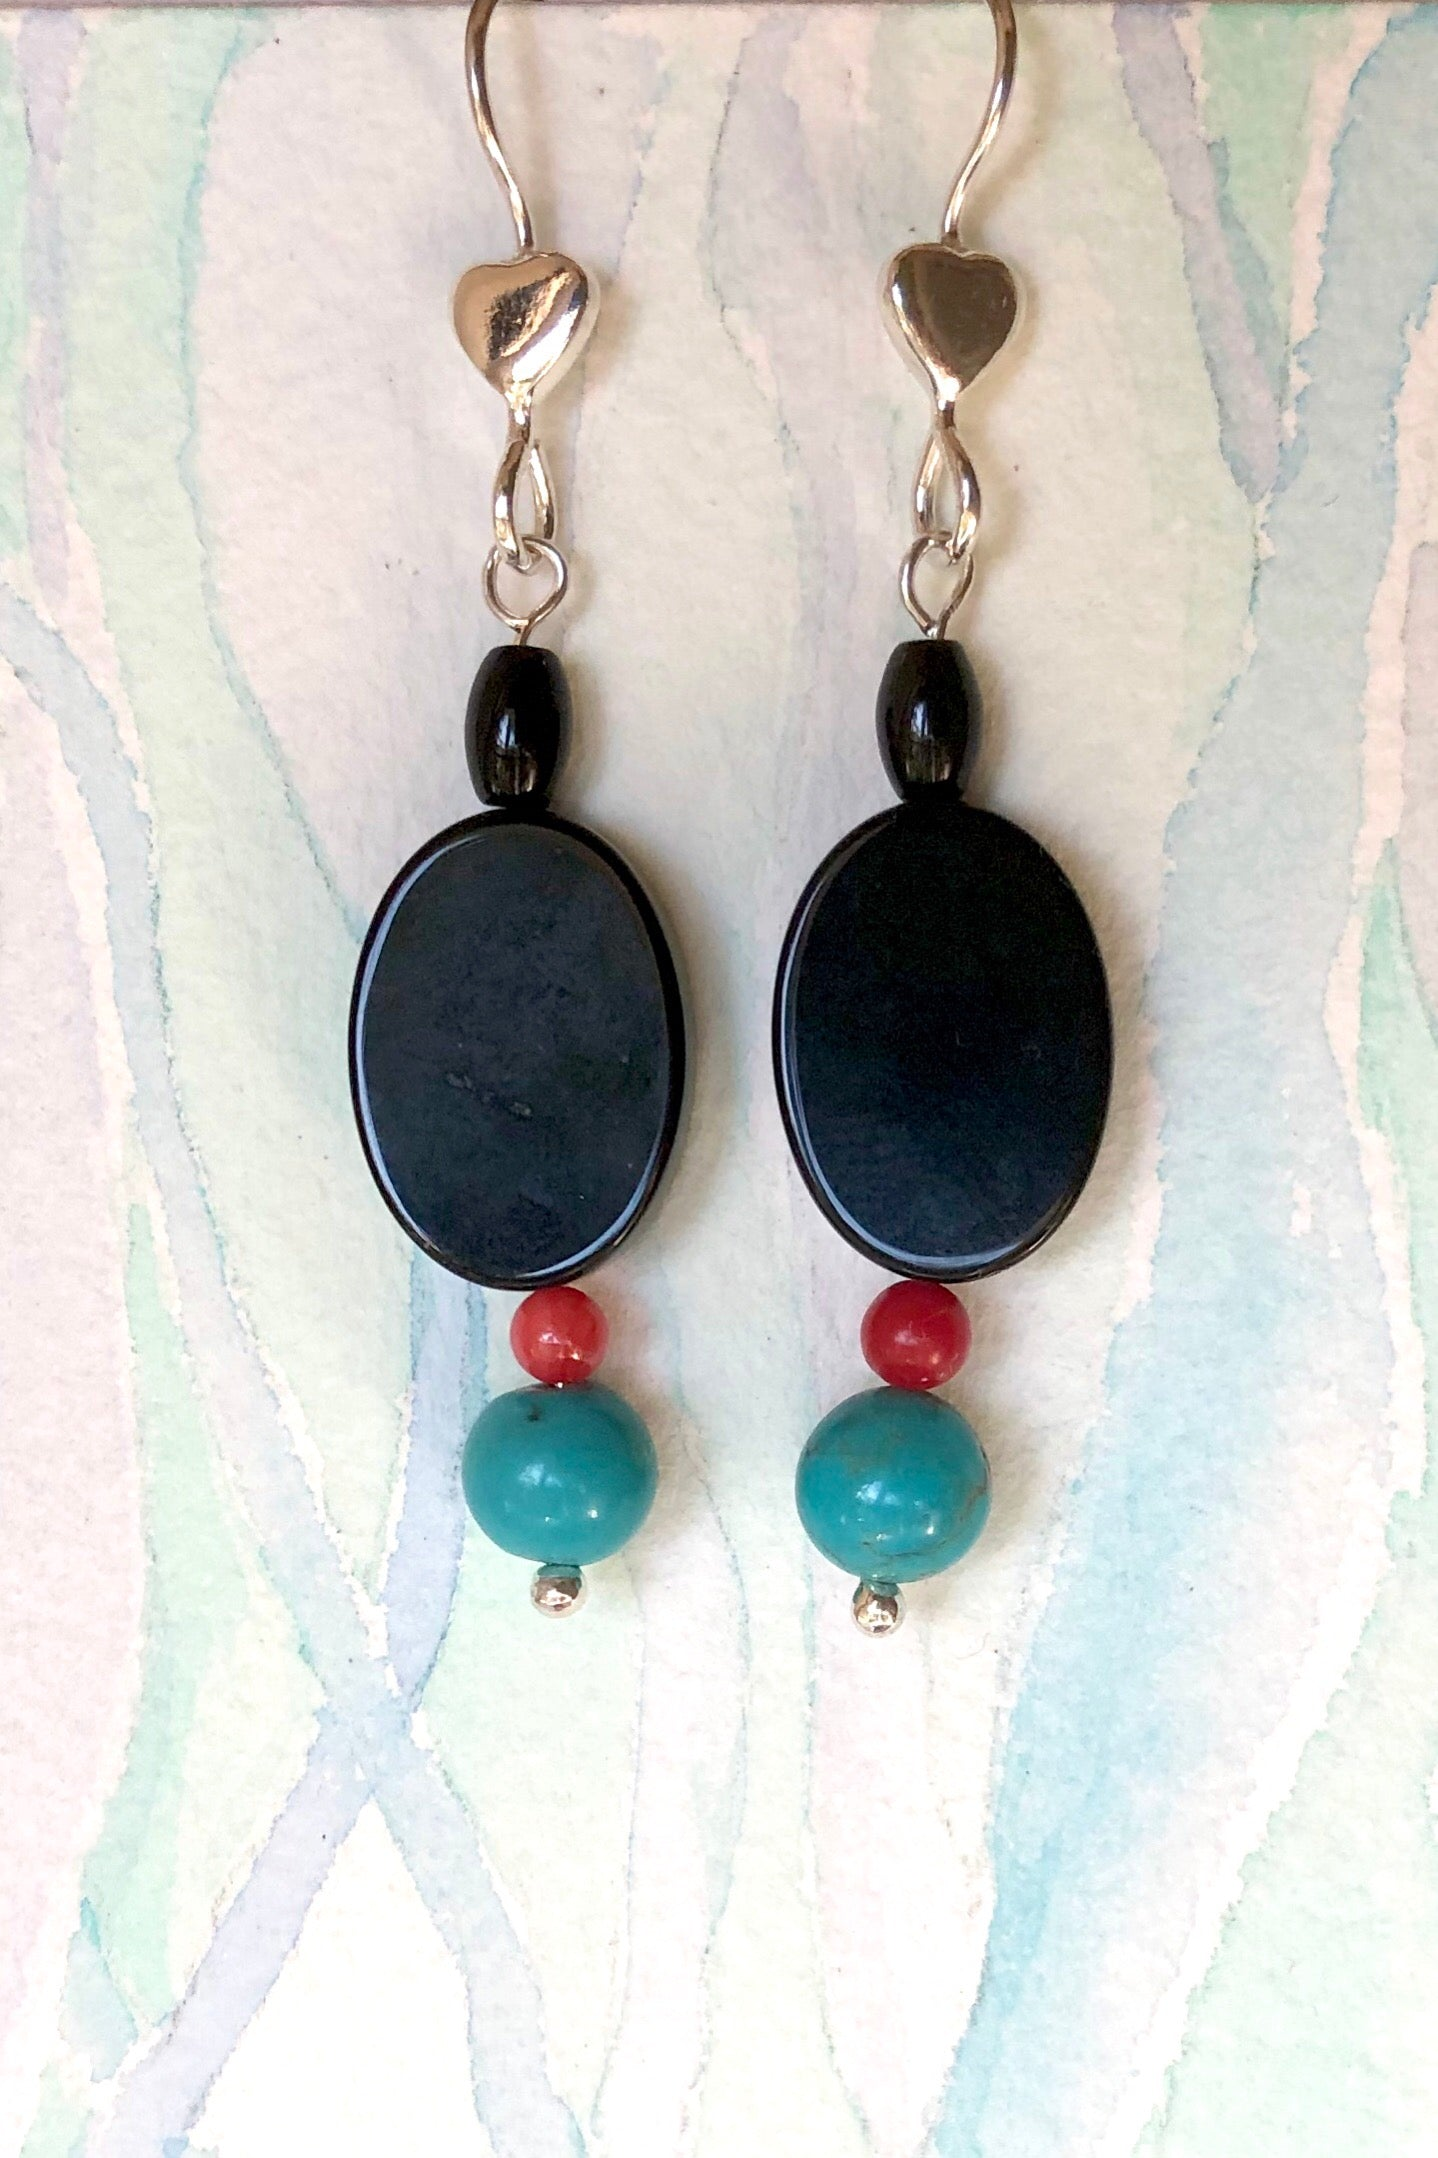 The Serendipity Earrings Black Heart  are handmade earrings featuring natural Black Onyx, natural Turquoise and red coral, hook is 925 Silver.